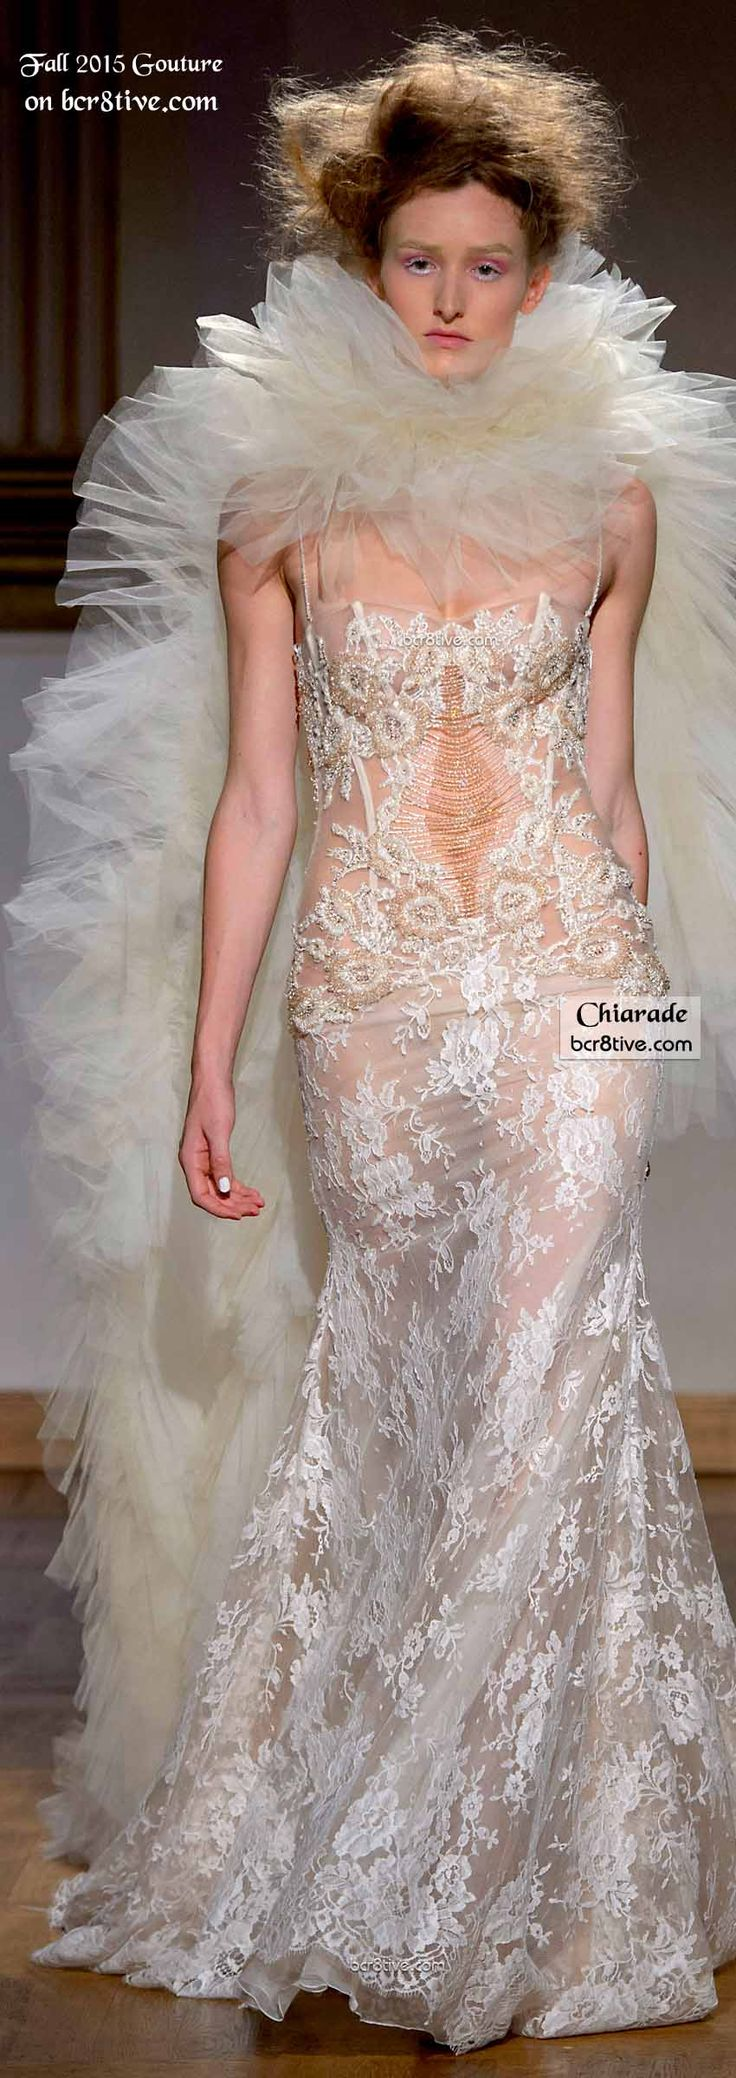 Chiarade Couture Fall 2015-16